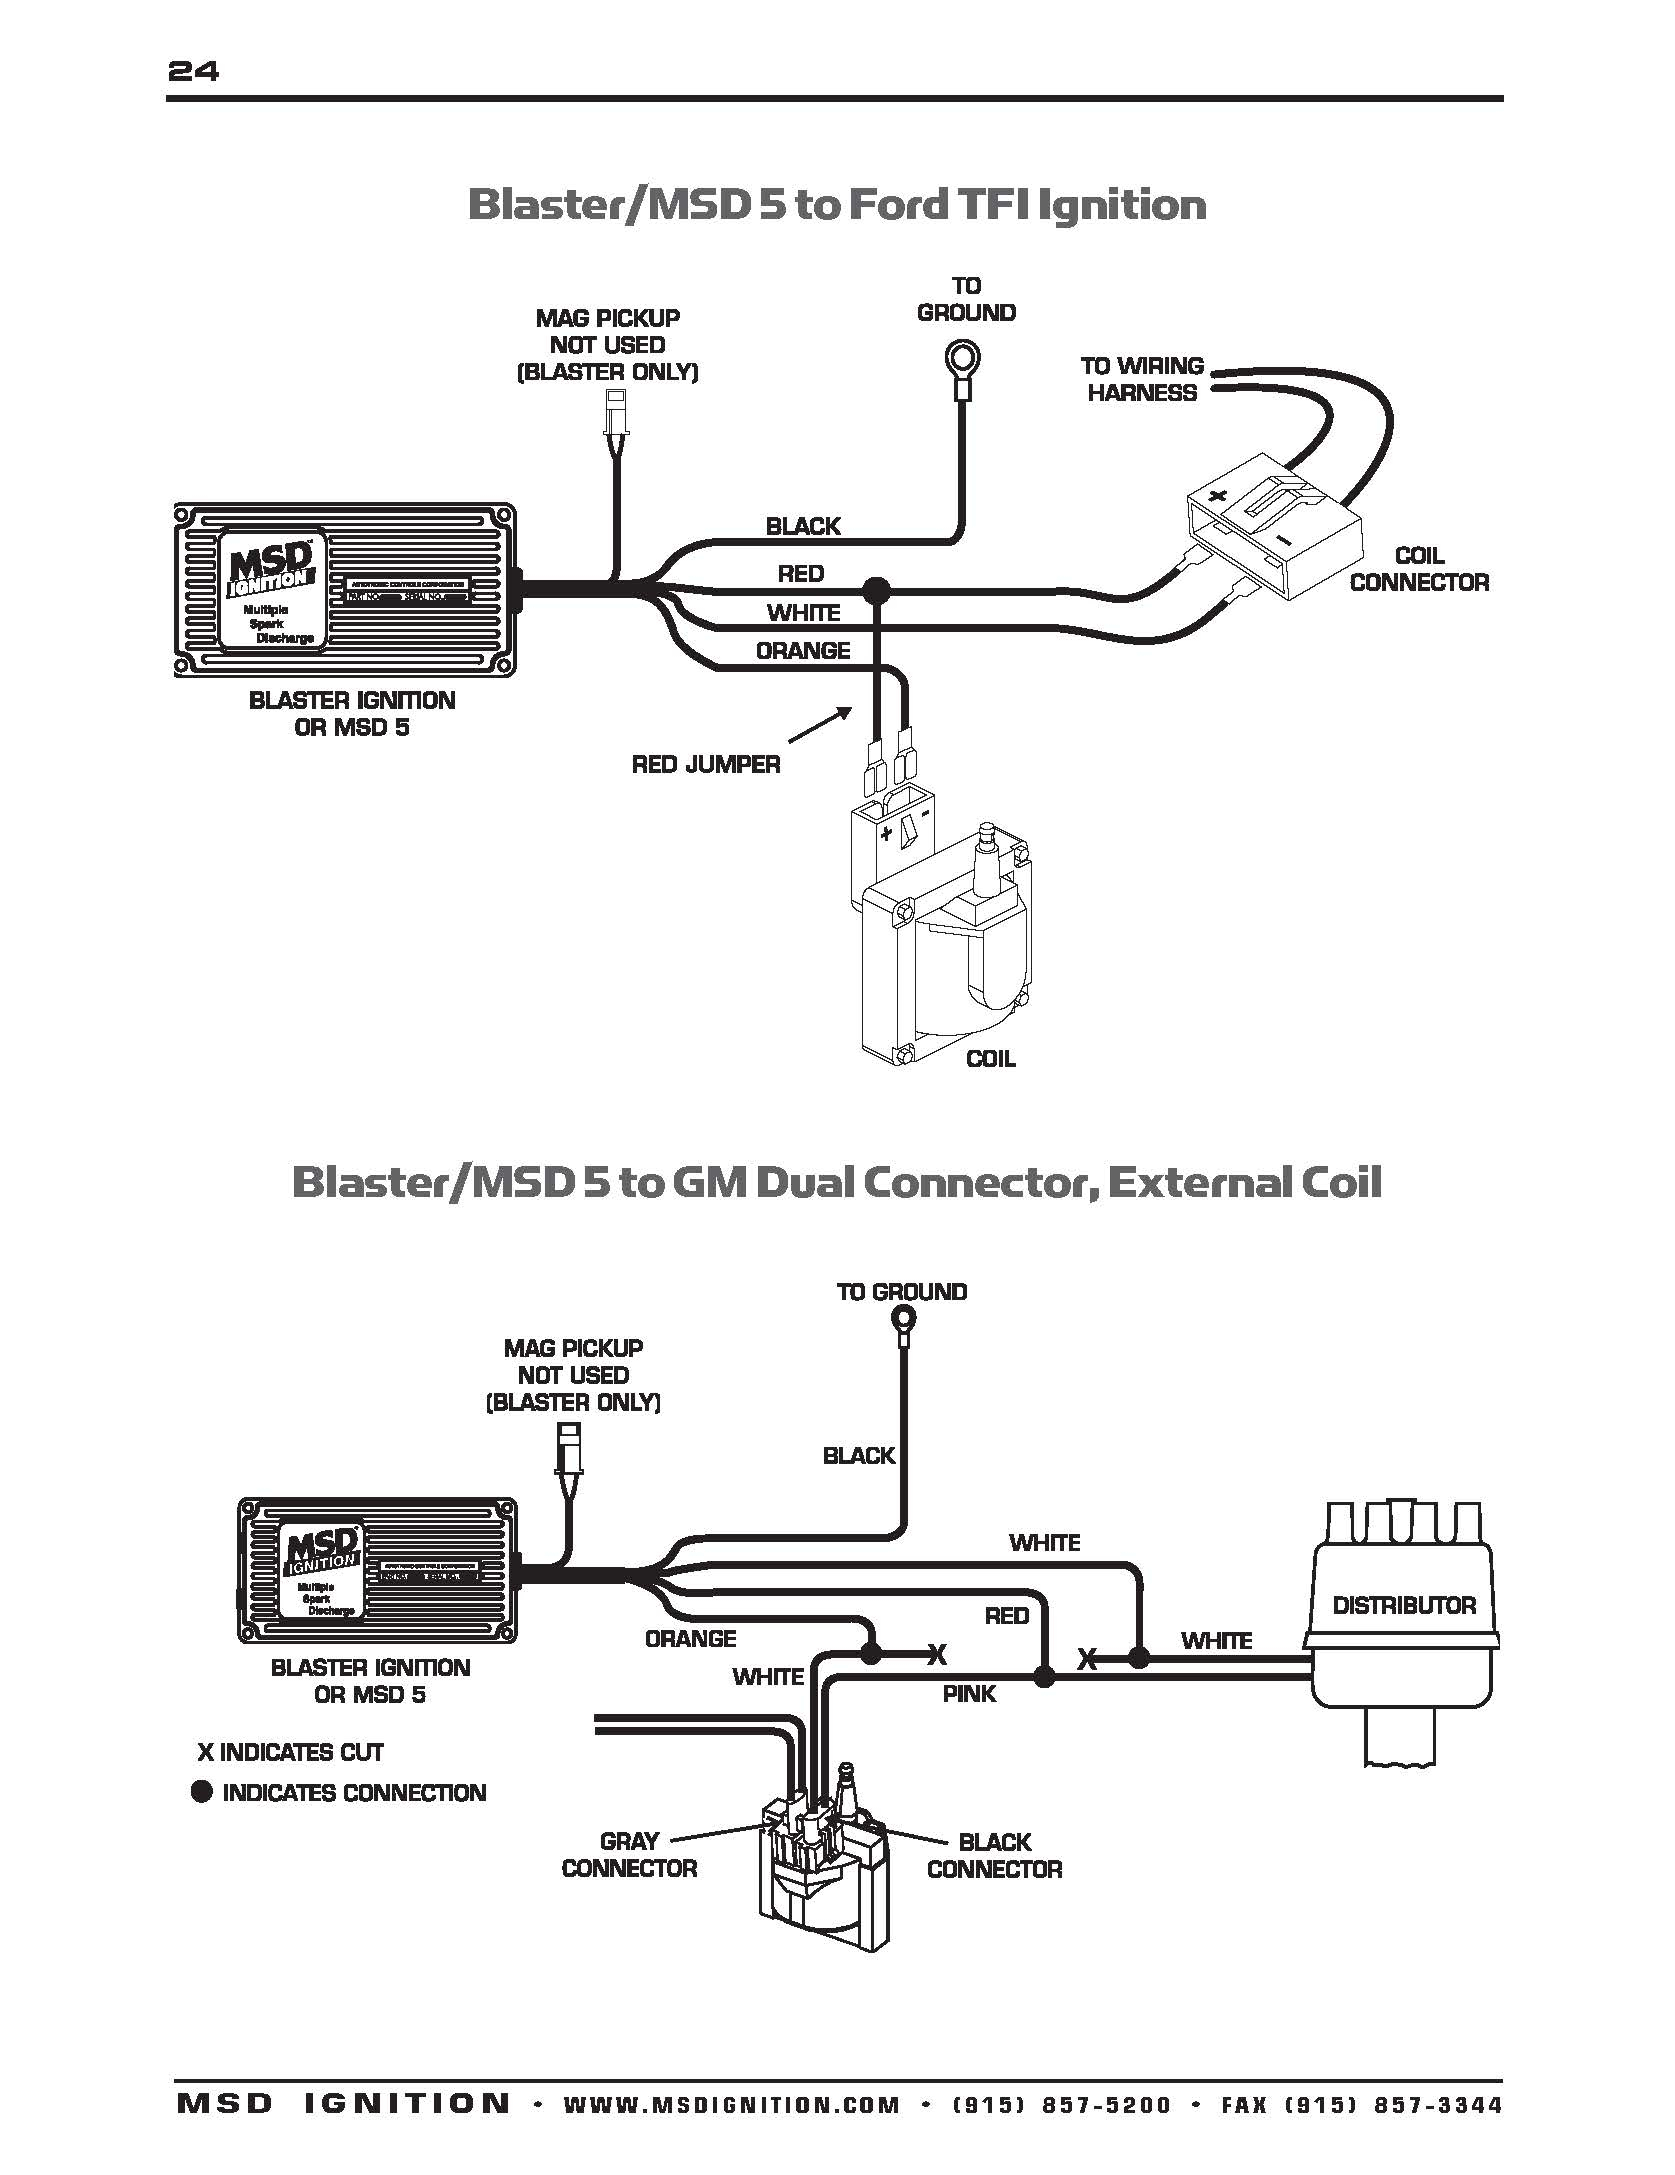 Chevy Lt1 Msd Ignition Wiring Diagram   Manual E-Books - Msd Ignition Wiring Diagram Chevy